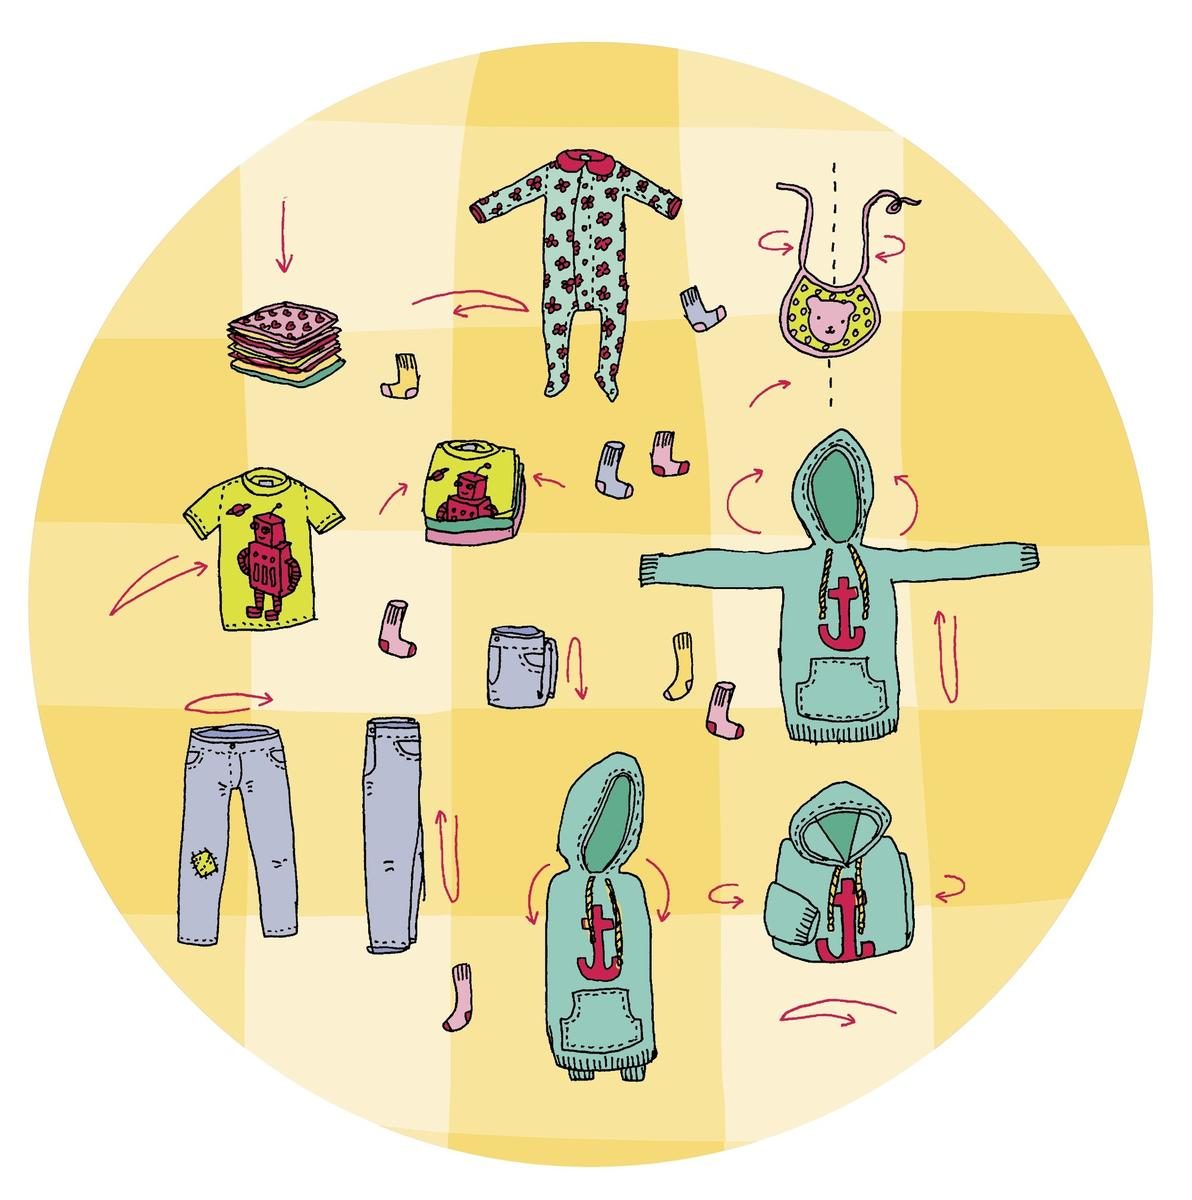 Folding Clothes IllustrationALLI ARNOLD